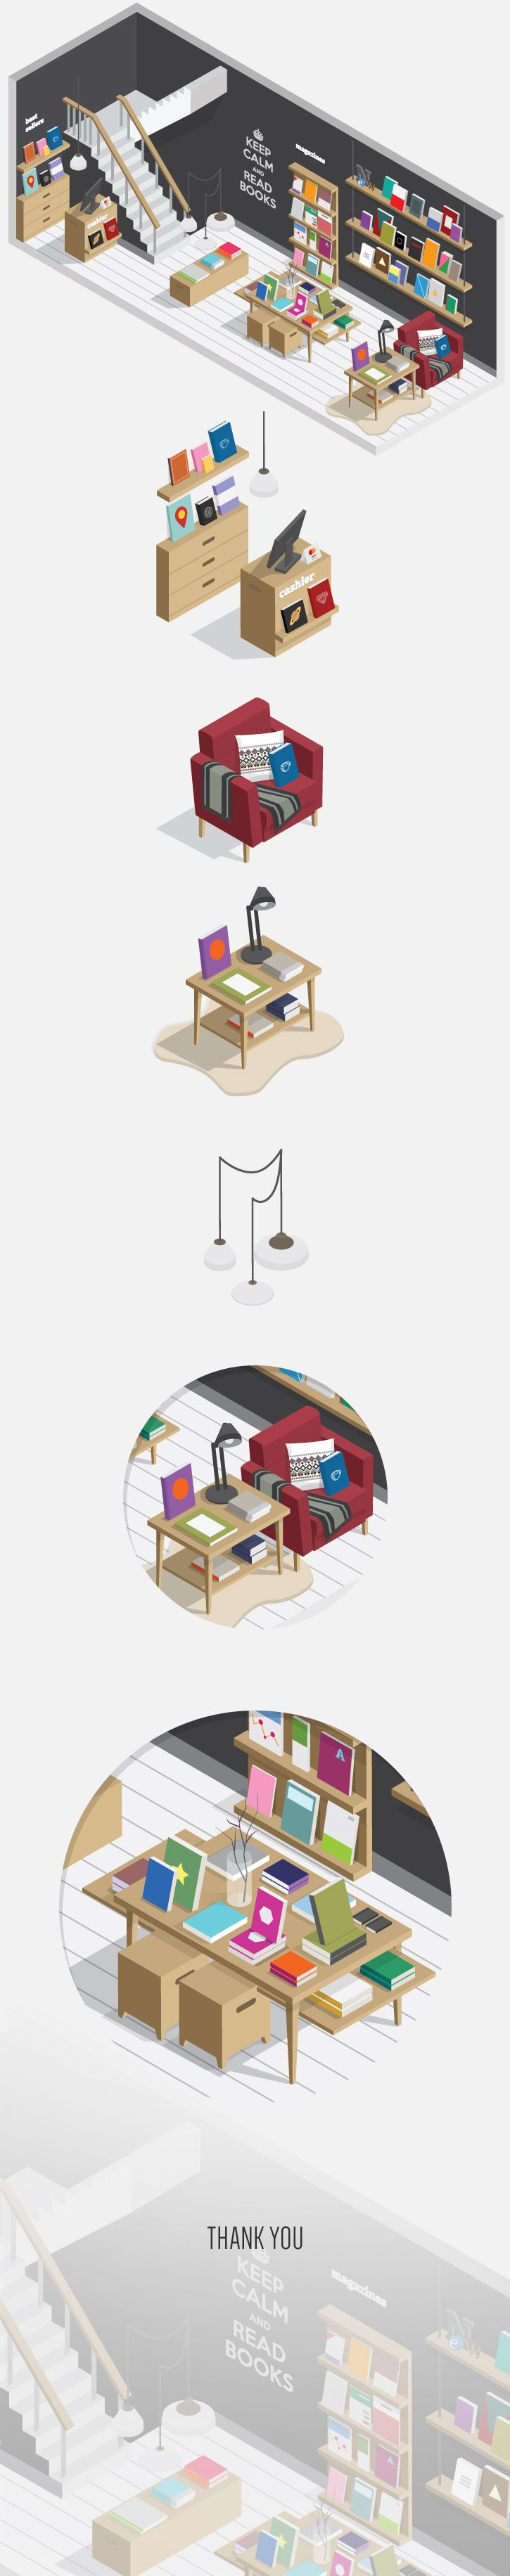 #flat_illustration Bookstore https://www.behance.net/gallery/21453685/Bookstore 647c8db172fb7a778da55128b1f4eefd.jpg (JPEG Image, 725 × 3664 pixels) - Scaled (26%)